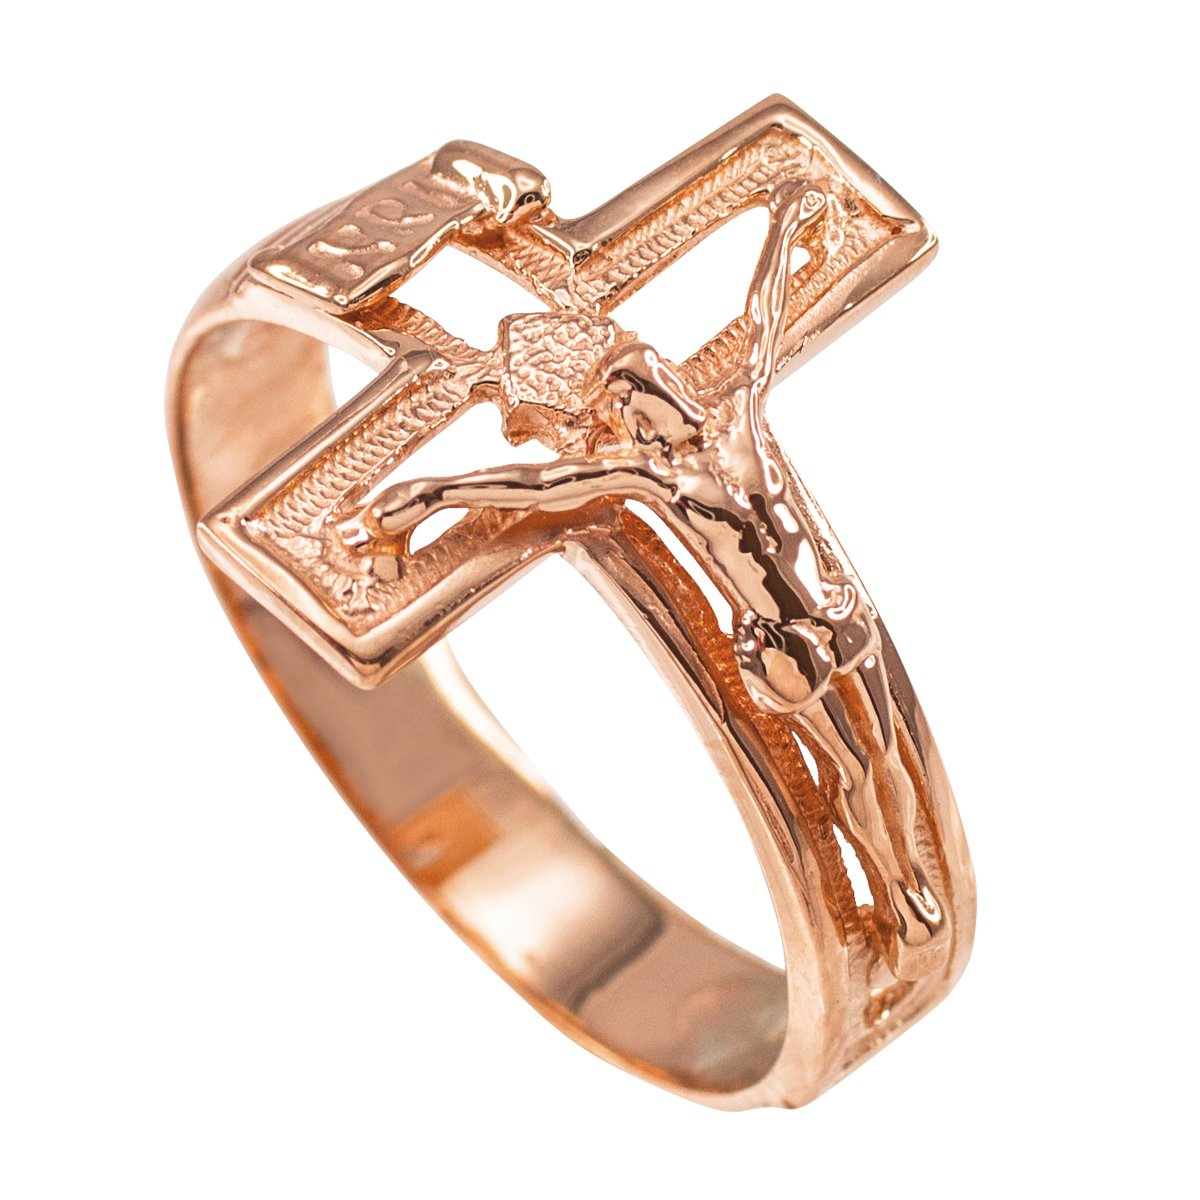 Religious Jewelry by FDJ Solid 10k Rose Gold Open Design Cross Band Crucifix Ring (Size 16)